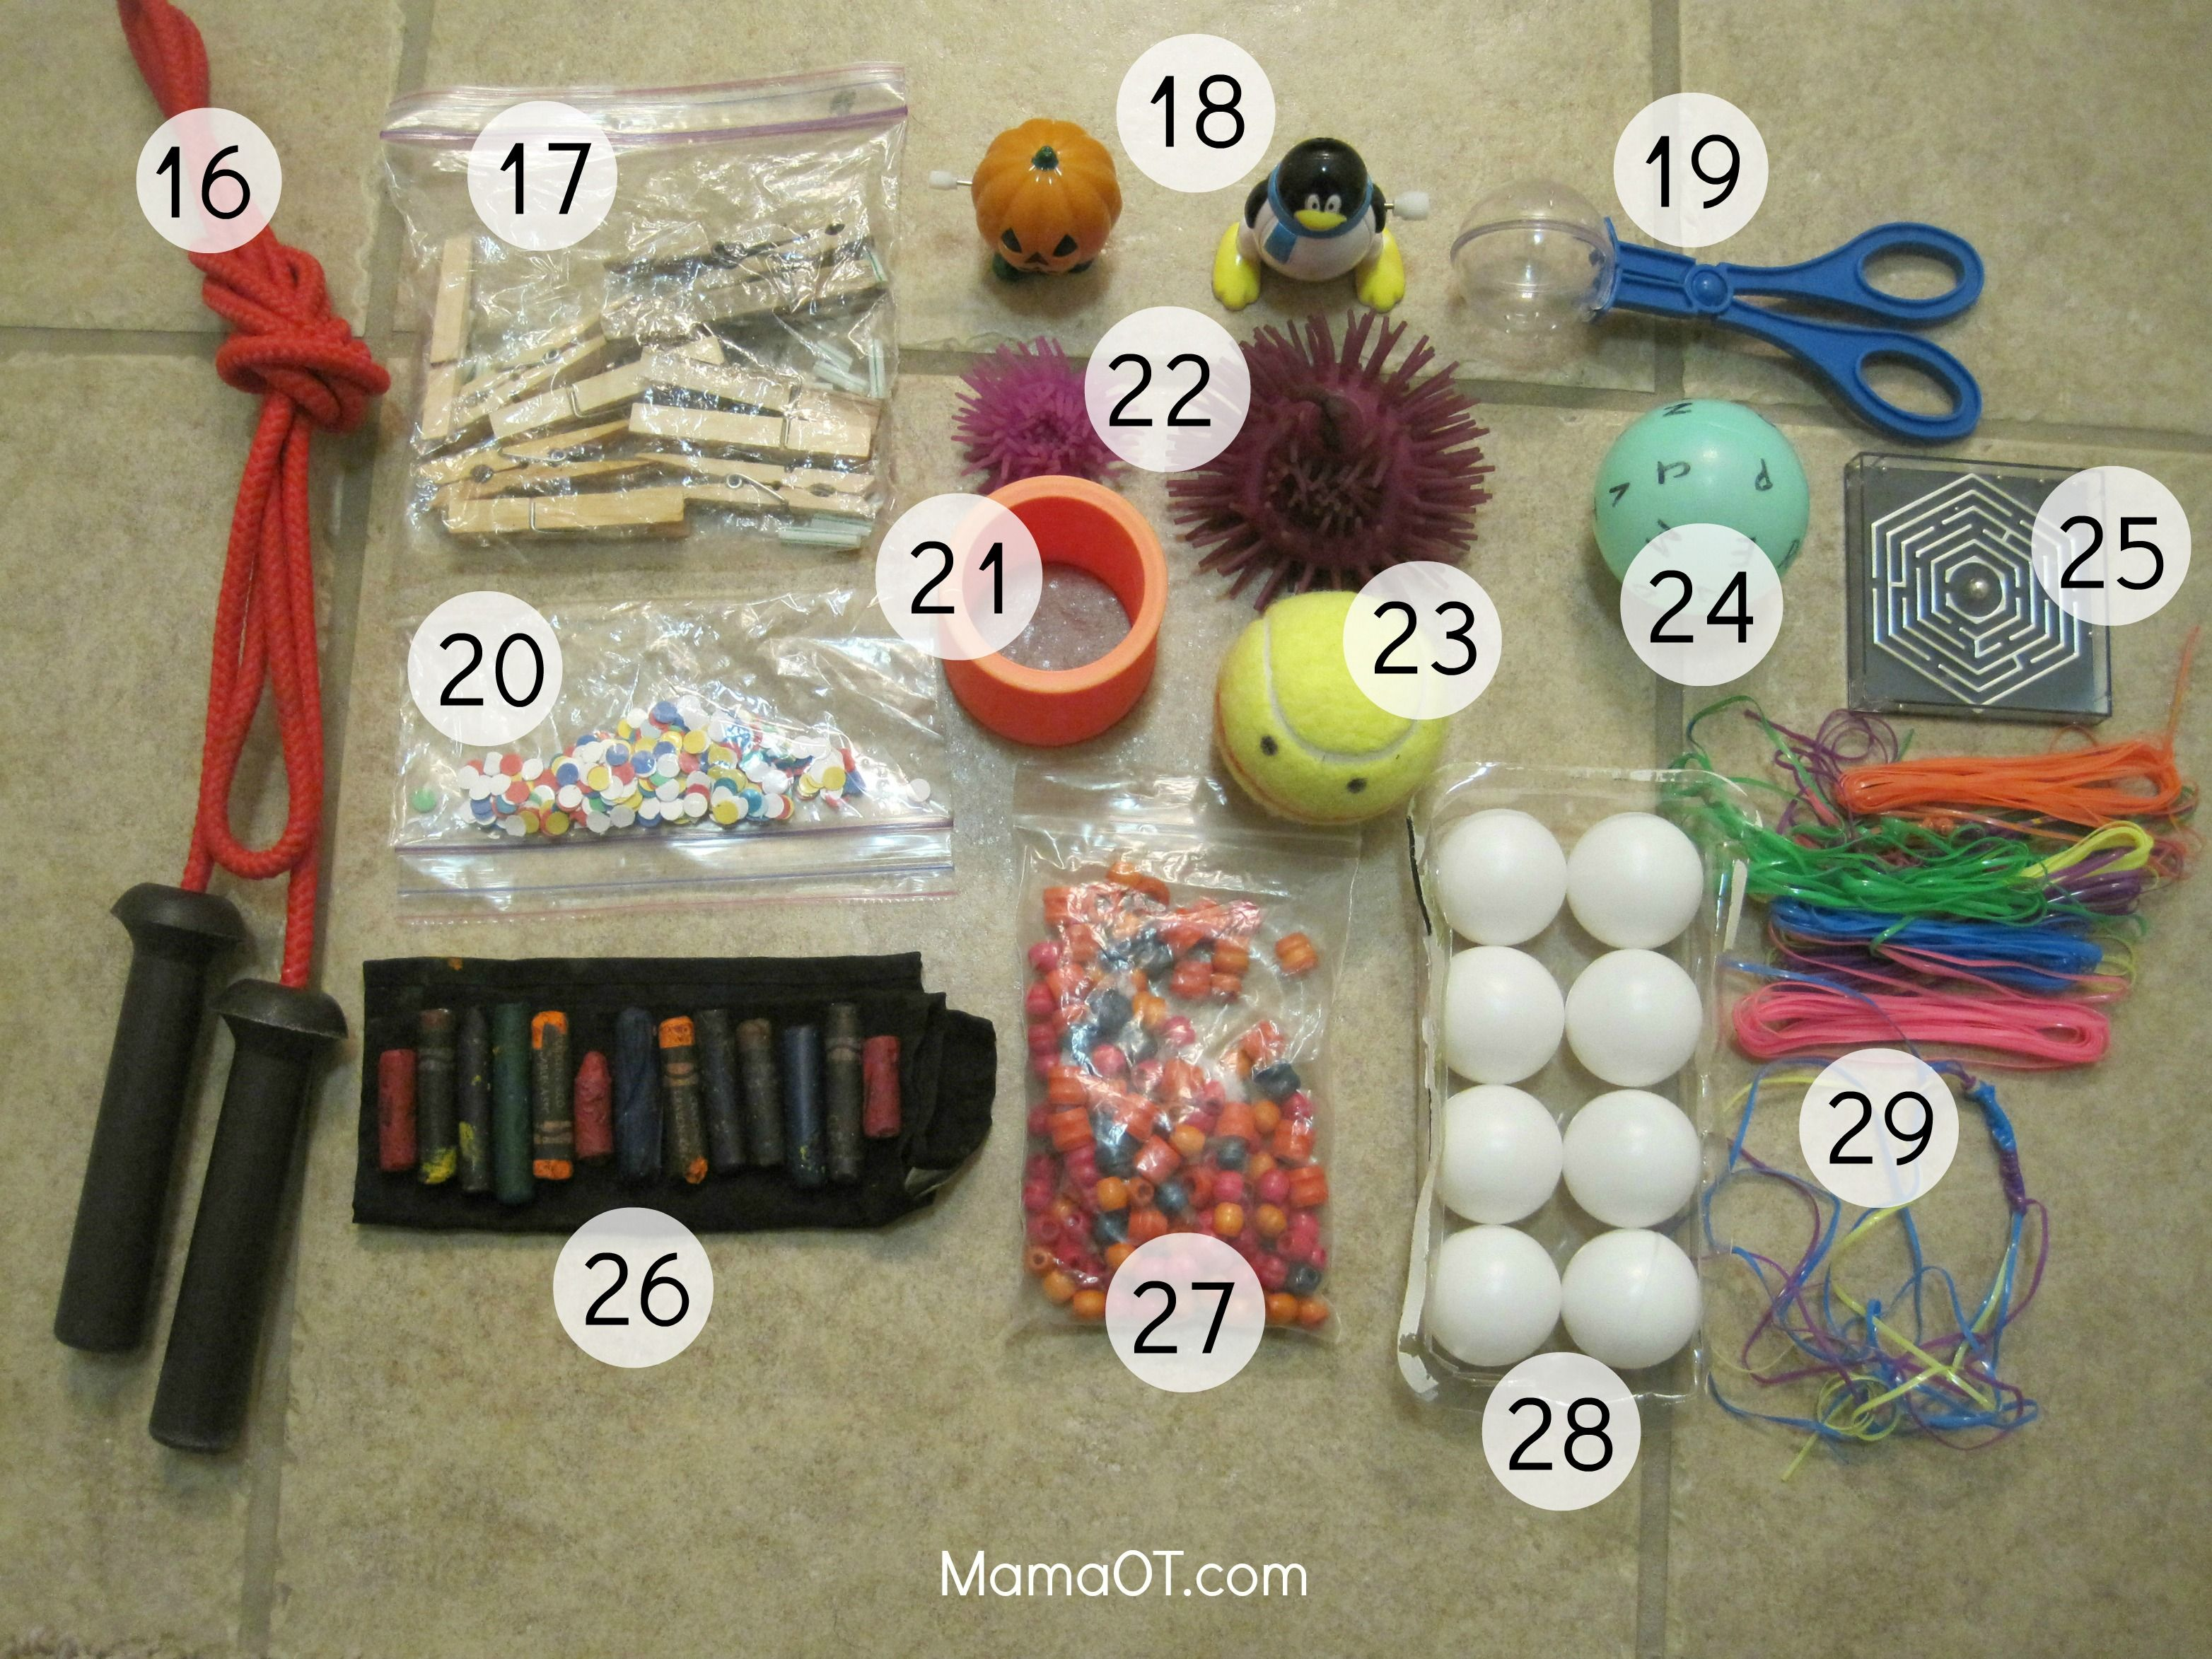 best images about occupational therapy lakeshore a mom occupational therapist reveals 50 items in her box to help children